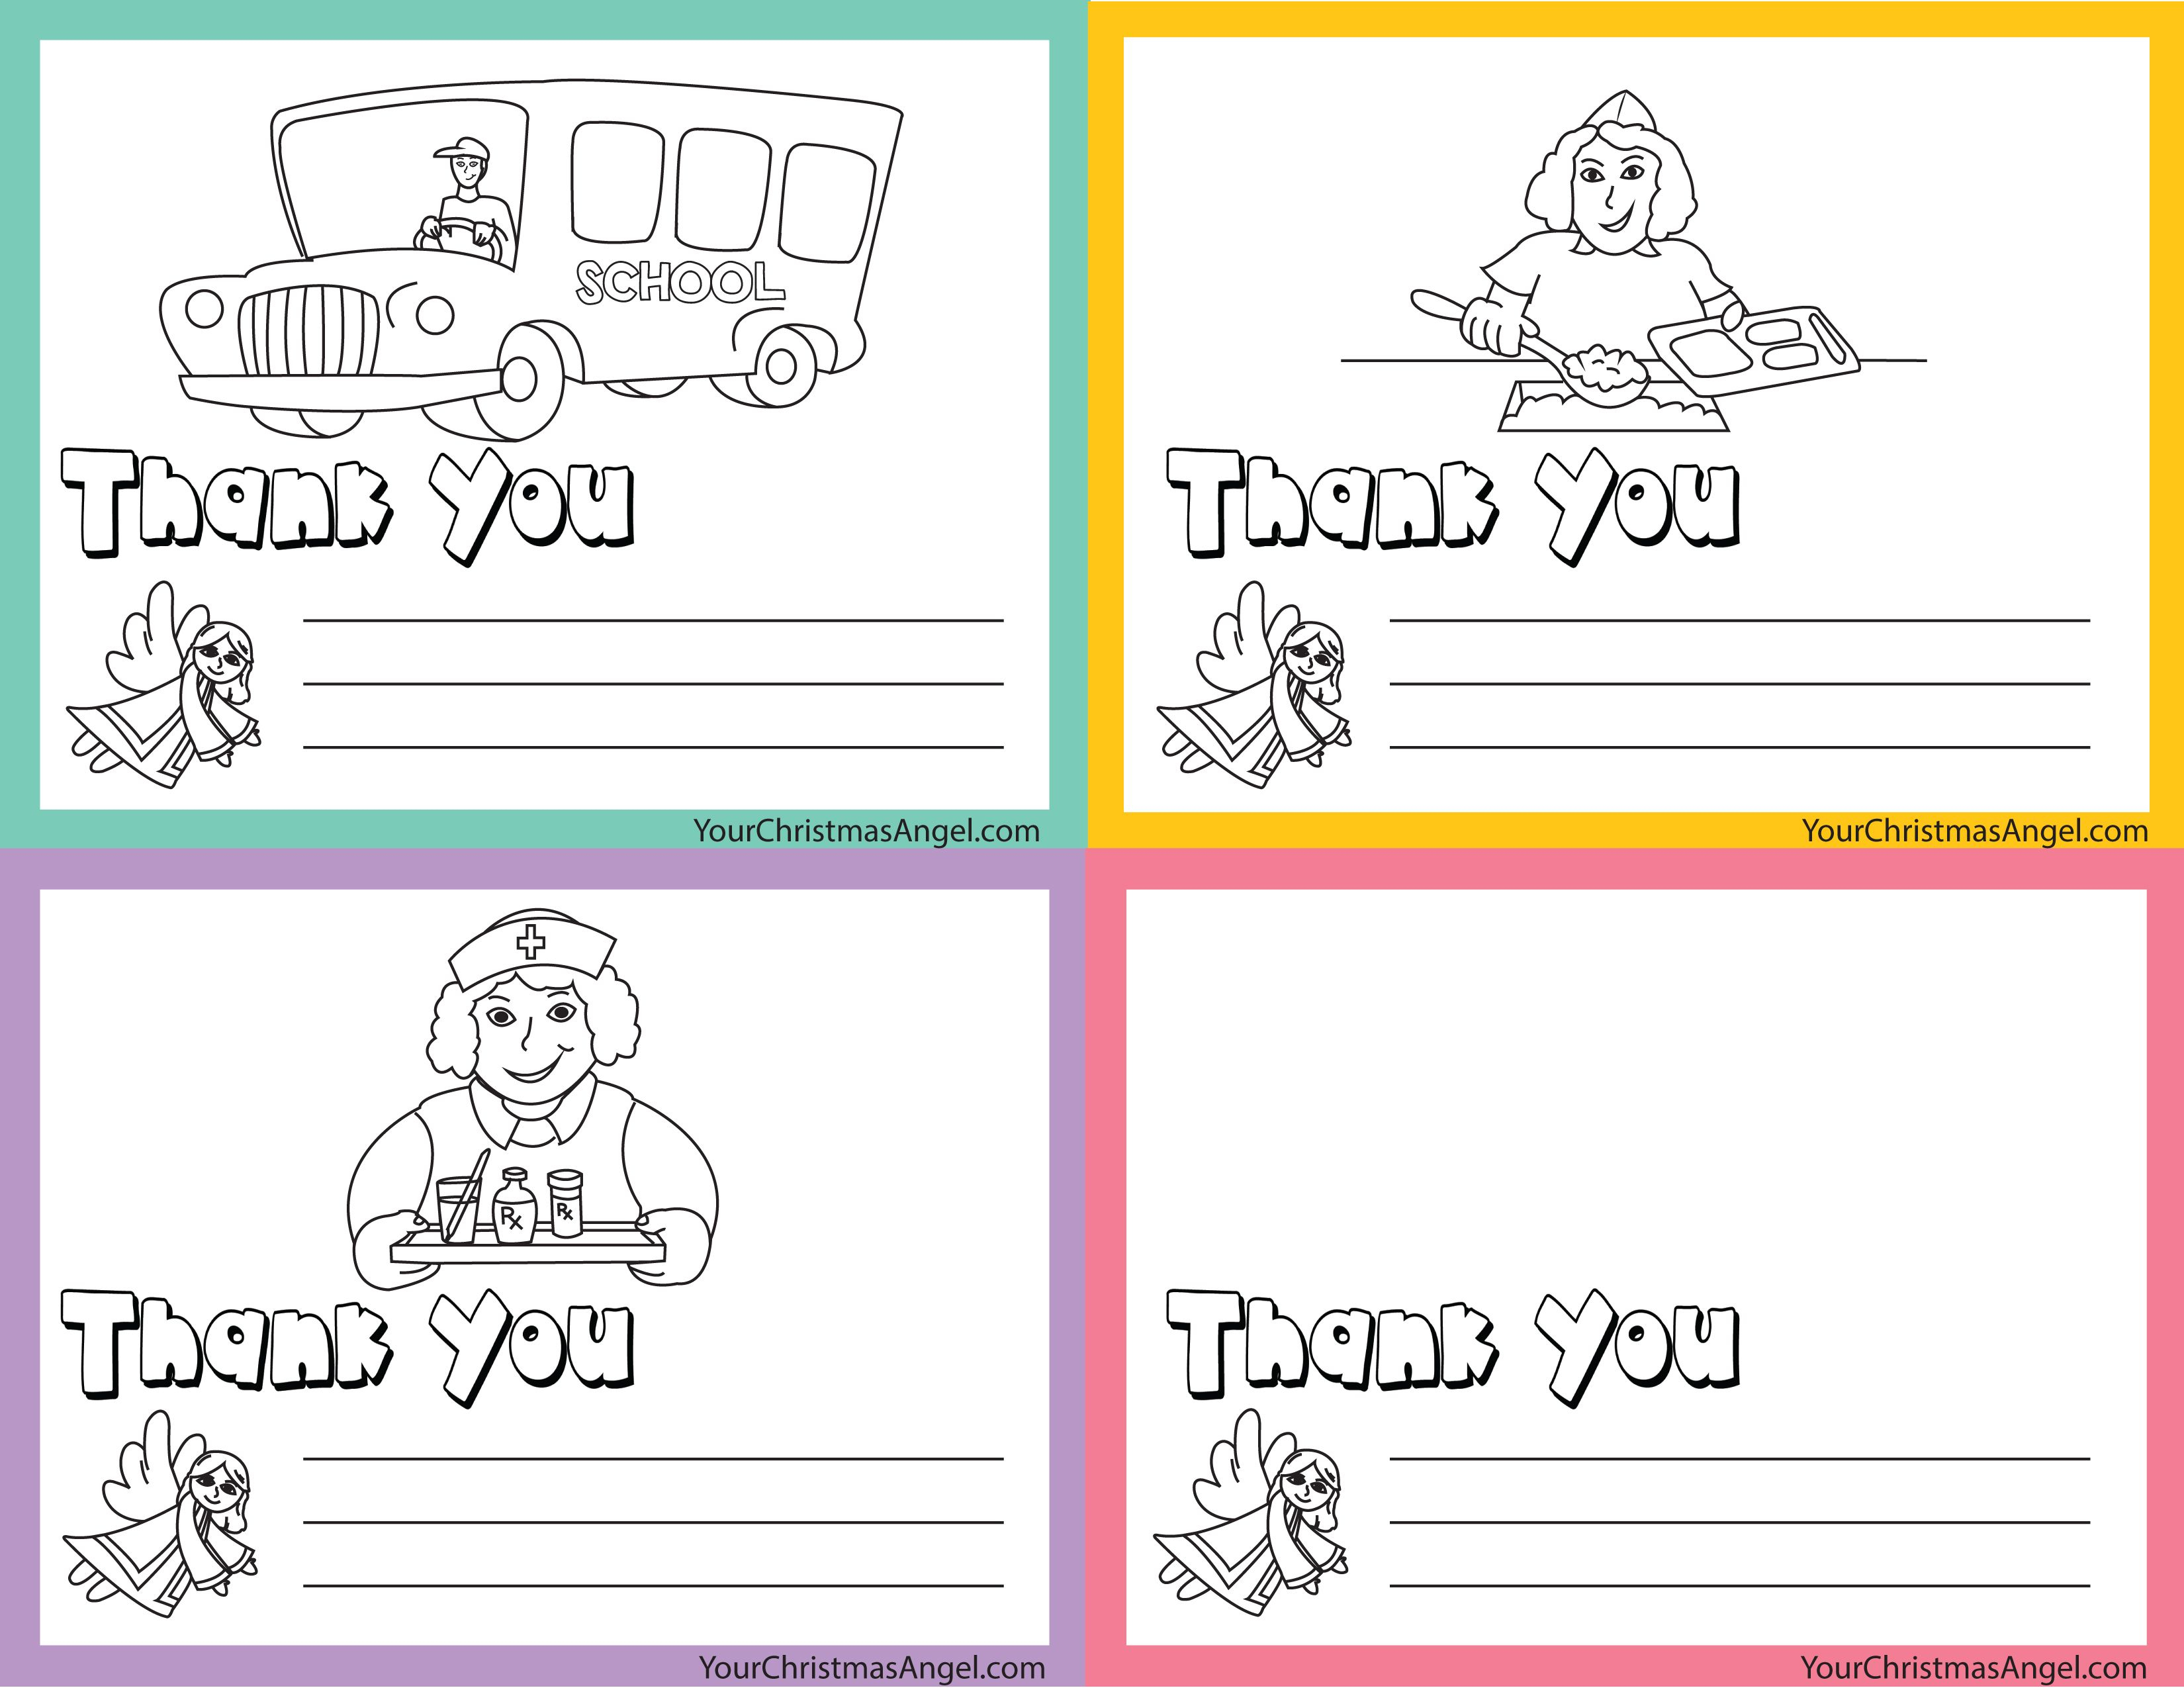 Thank You Cards For Those In Our School Systems!! Great For Teachers - Free Printable Volunteer Thank You Cards